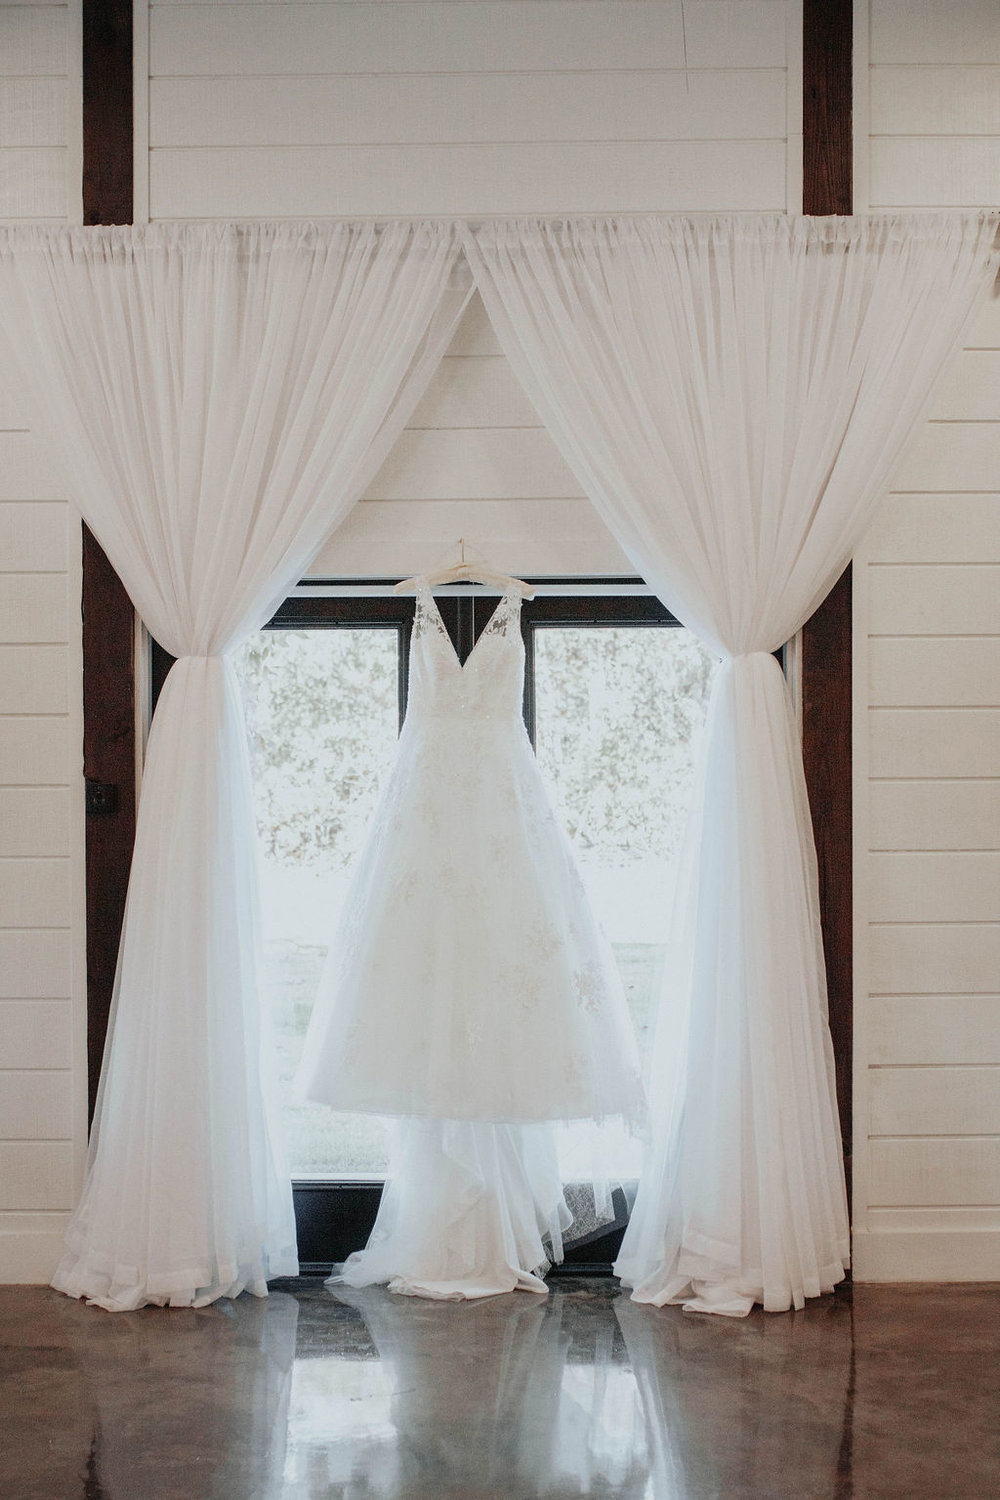 Bixby Tulsa Wedding Venue White Barn 3.jpg